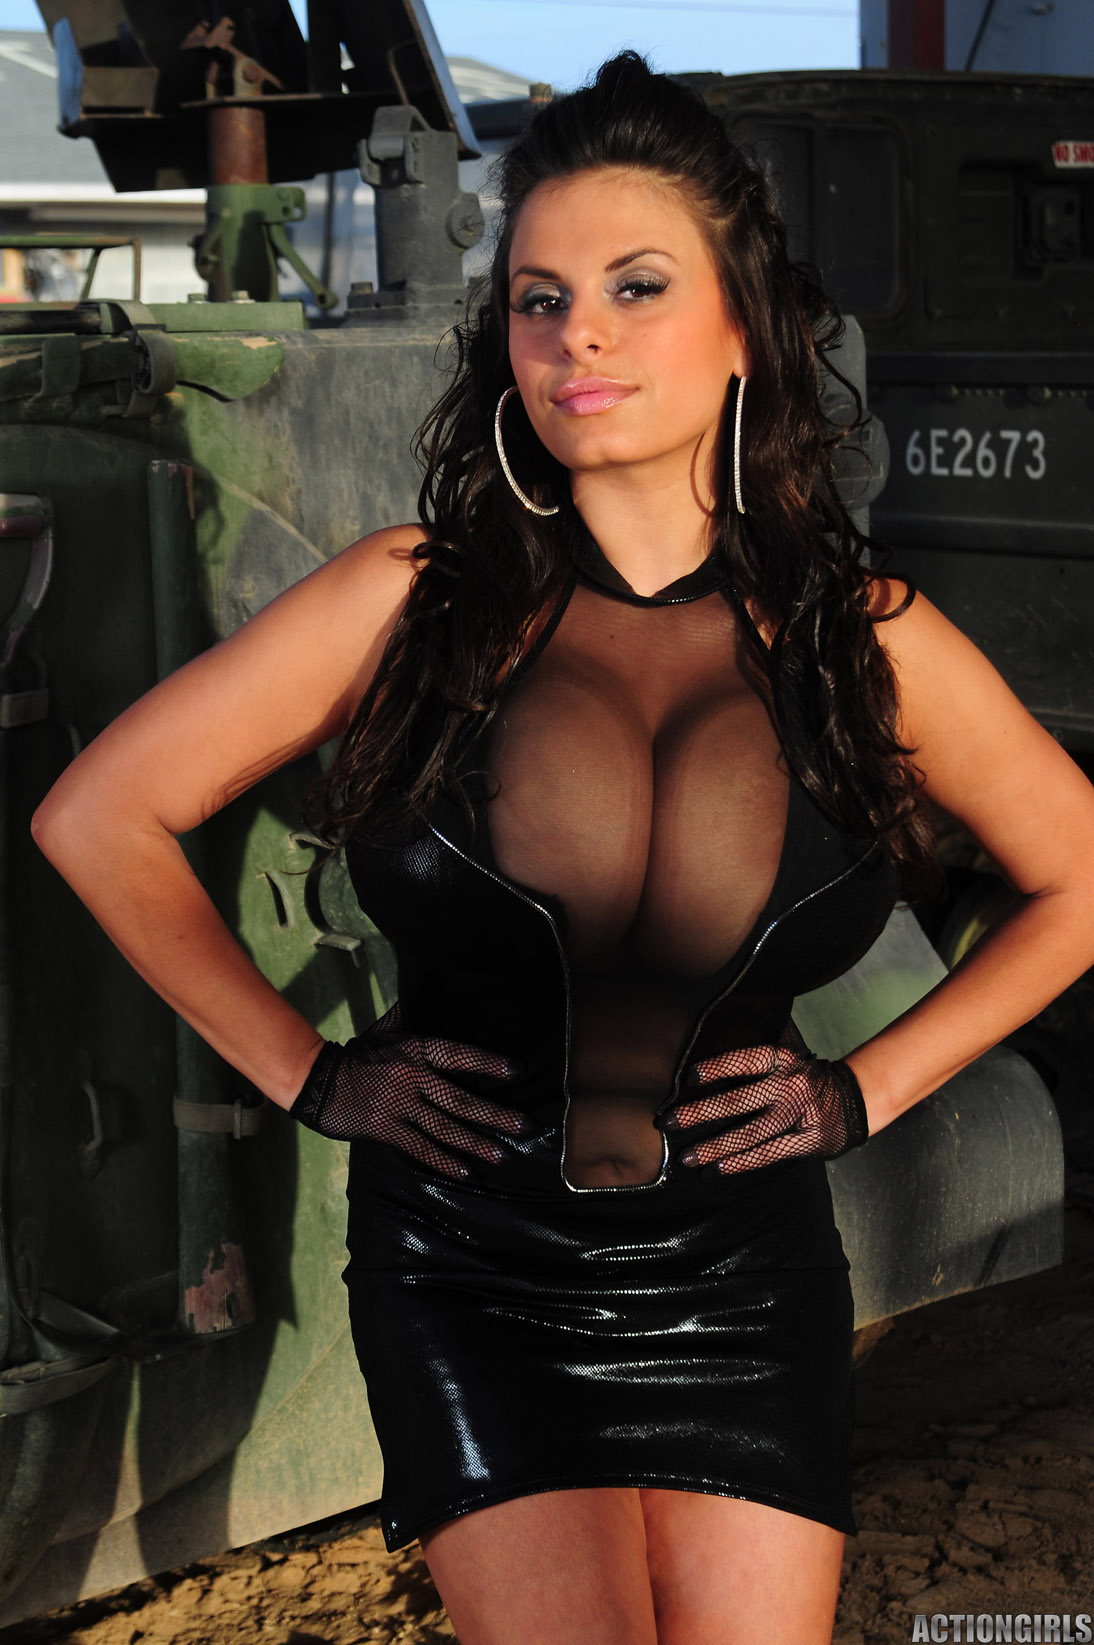 Wendy Fiore Hufe Tits in Black Vinyl Minidress for Actiongirls